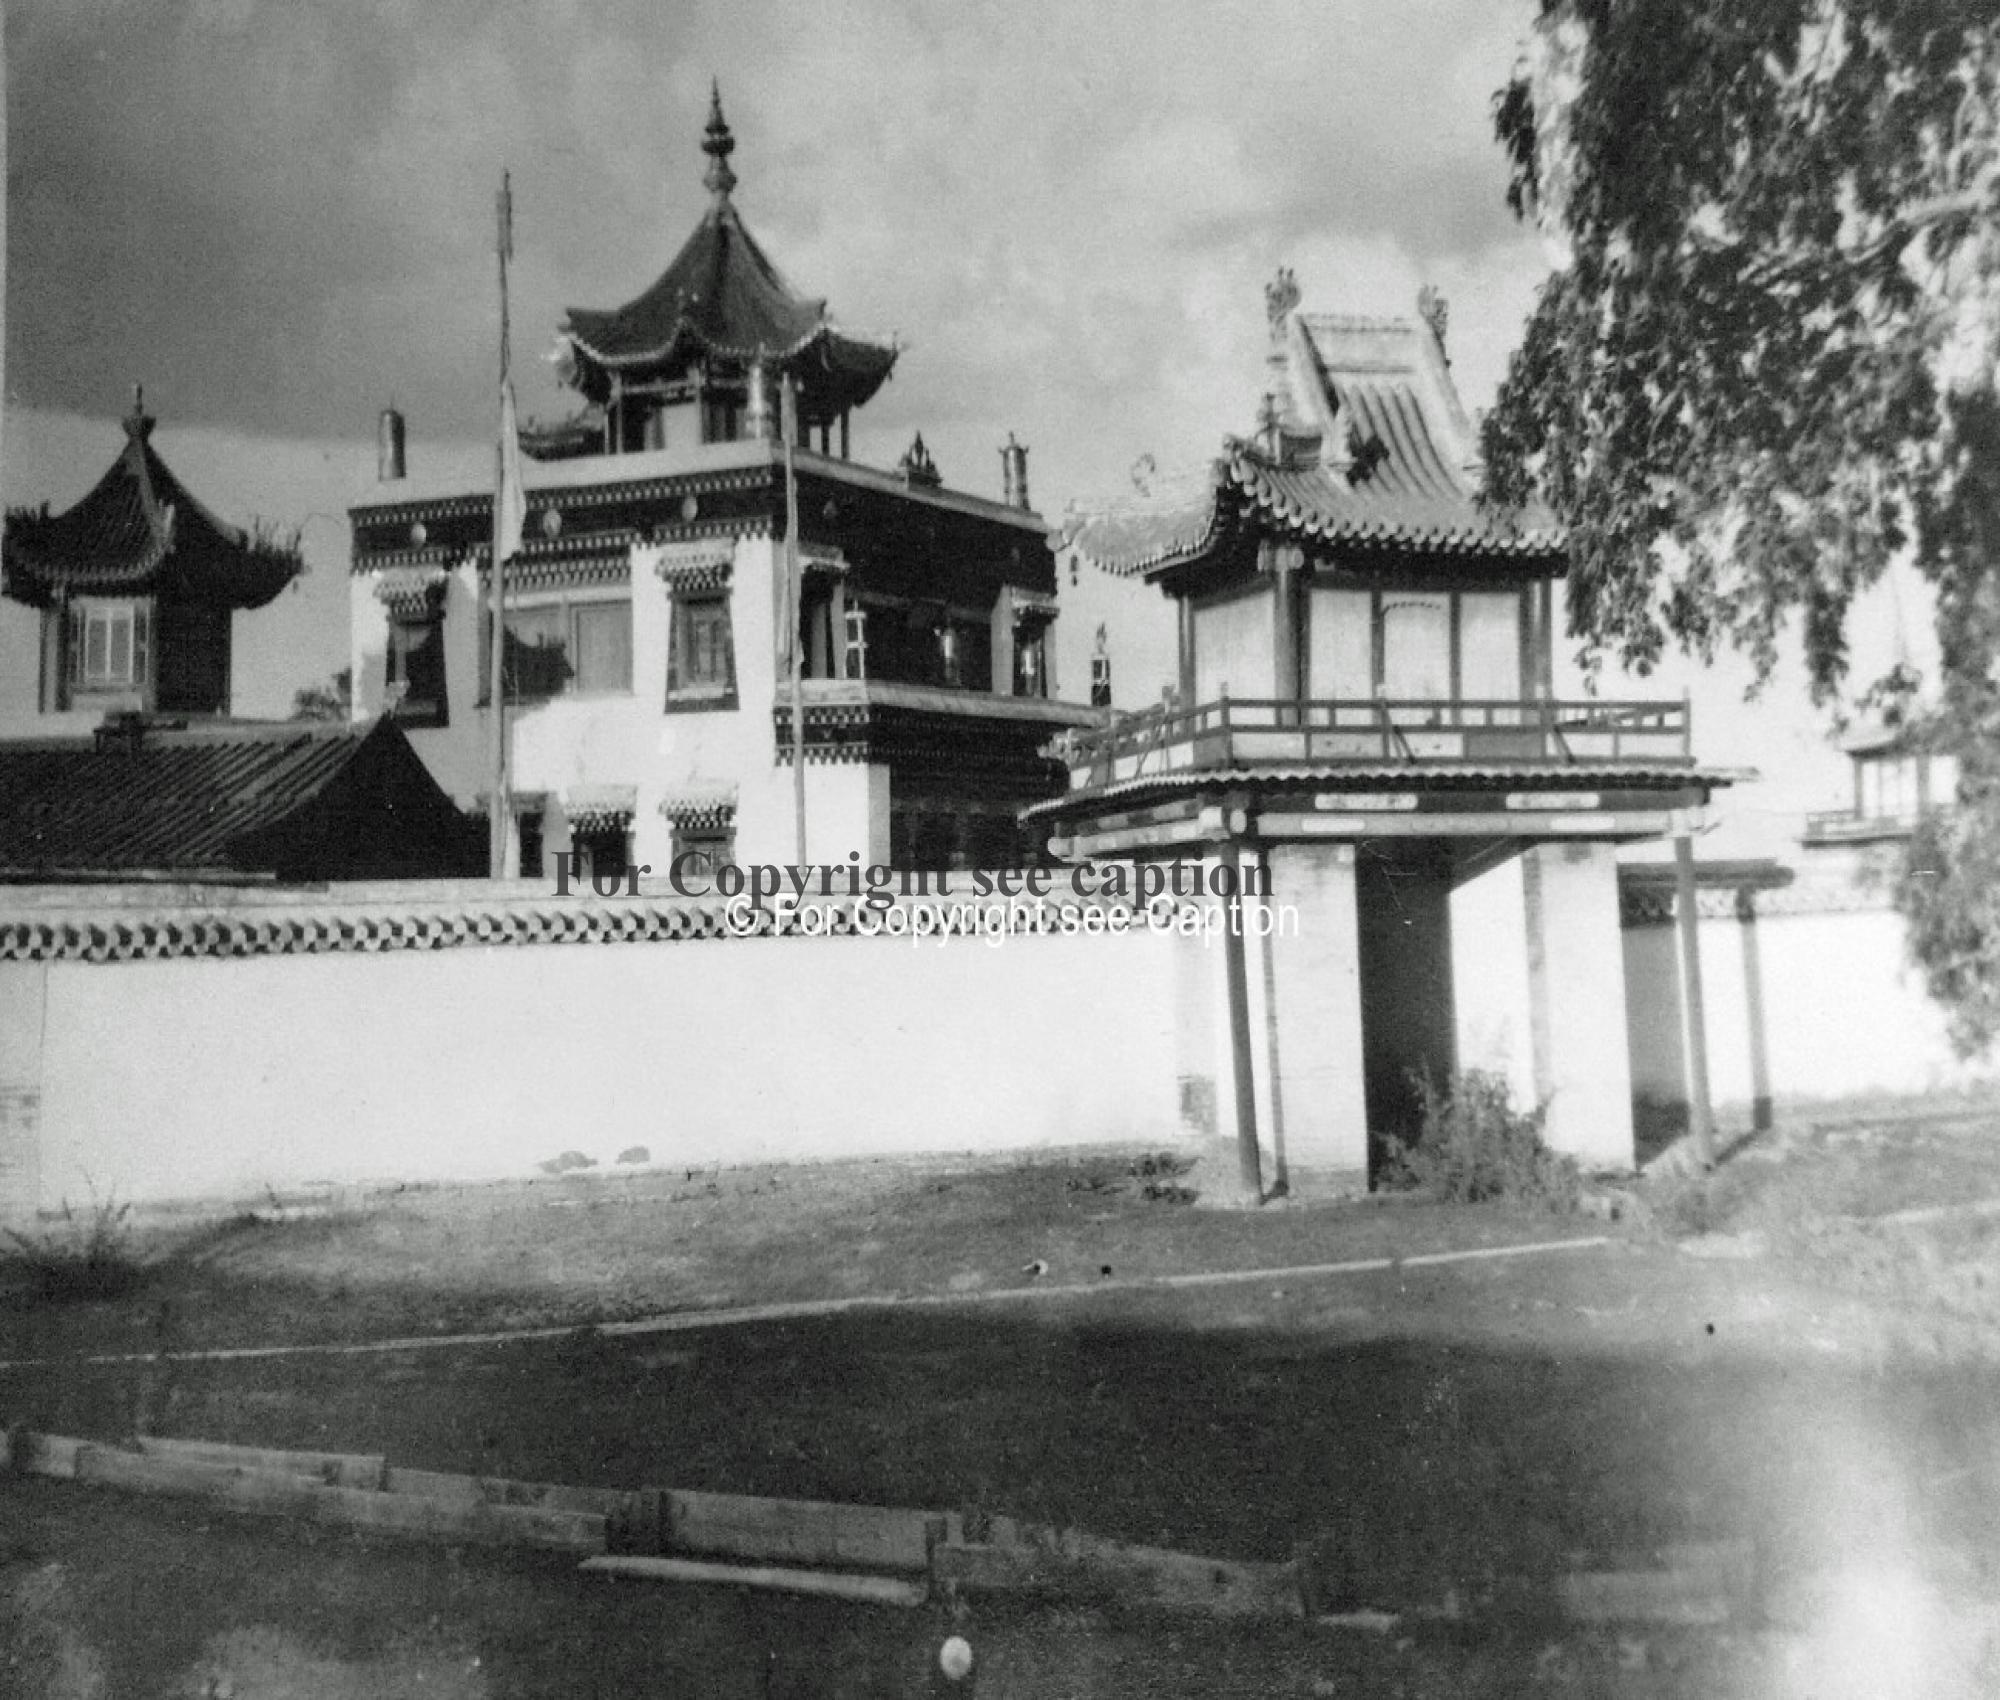 General view. 1930. Photo exhibition held in Bonn by German-Mongolia Society in 2005. Copy of the ex